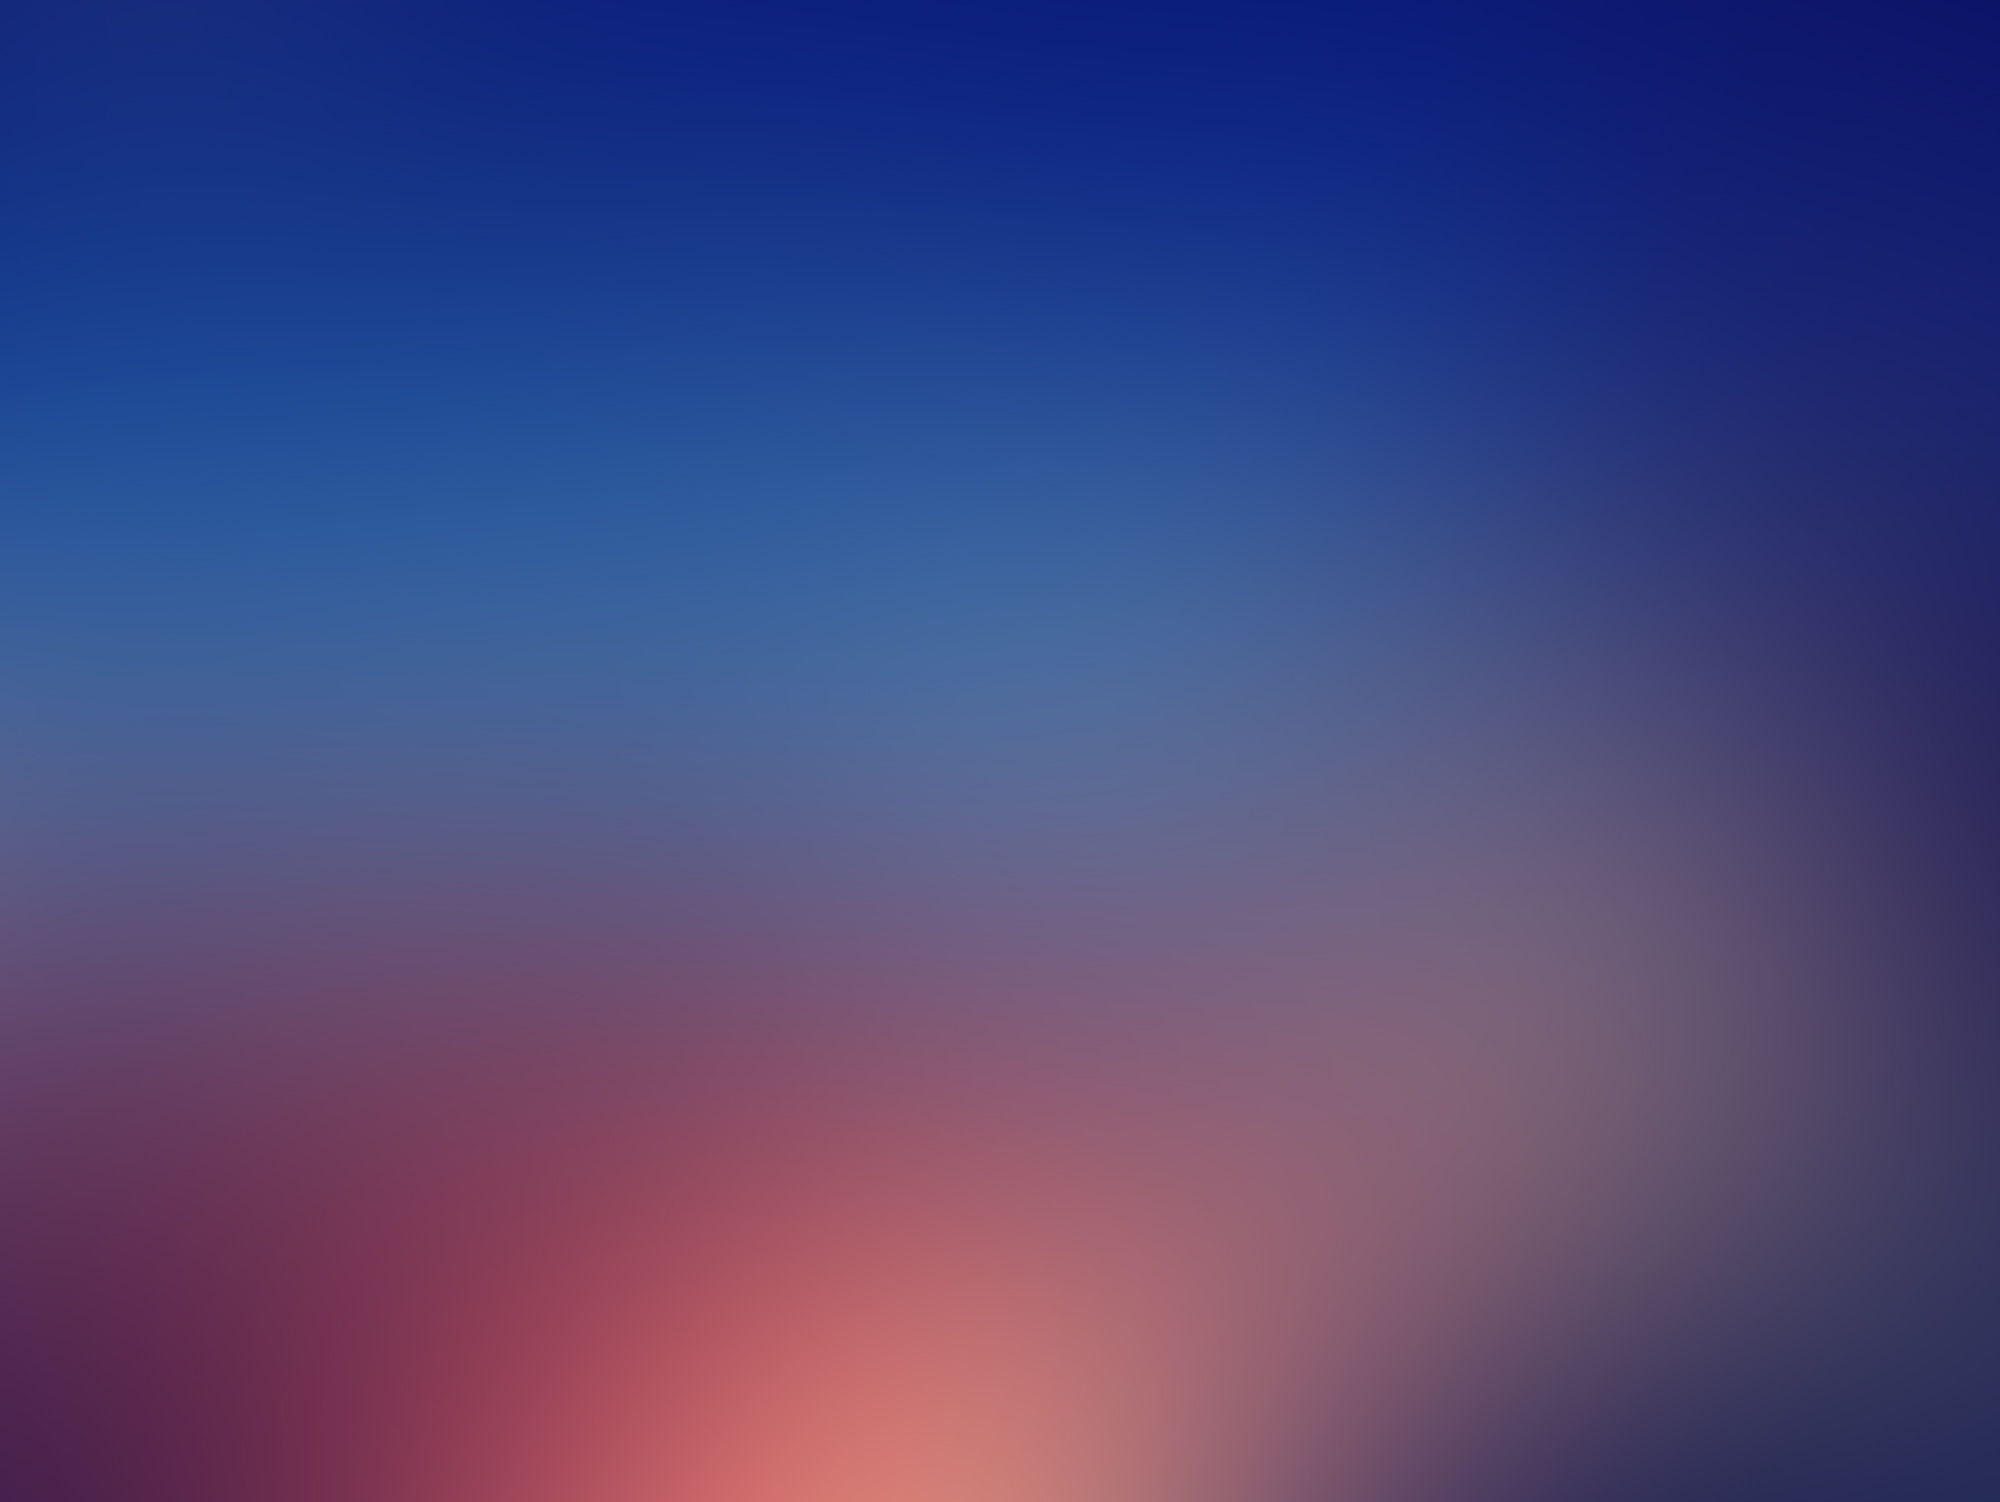 Free HD Solid Color Wallpaper Download Full Hd Windows Backgrounds